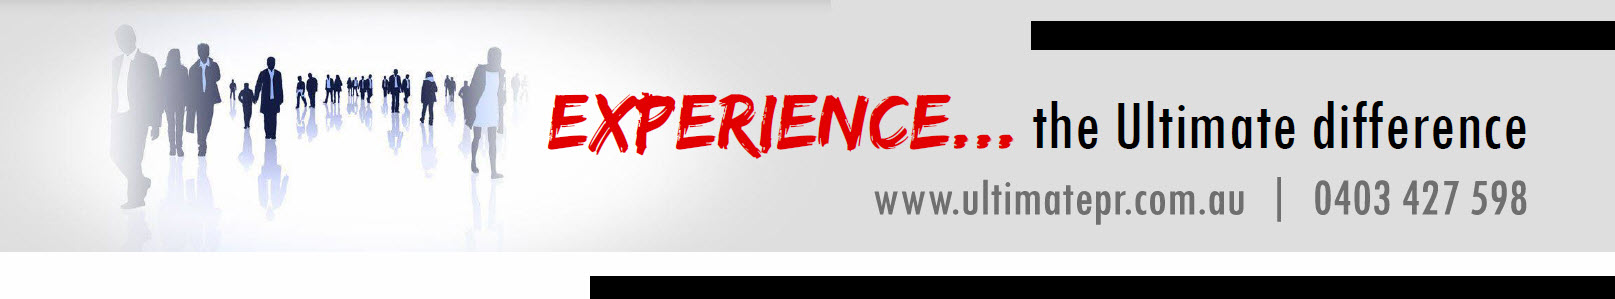 UPR website banner option 2019 clients experience the difference